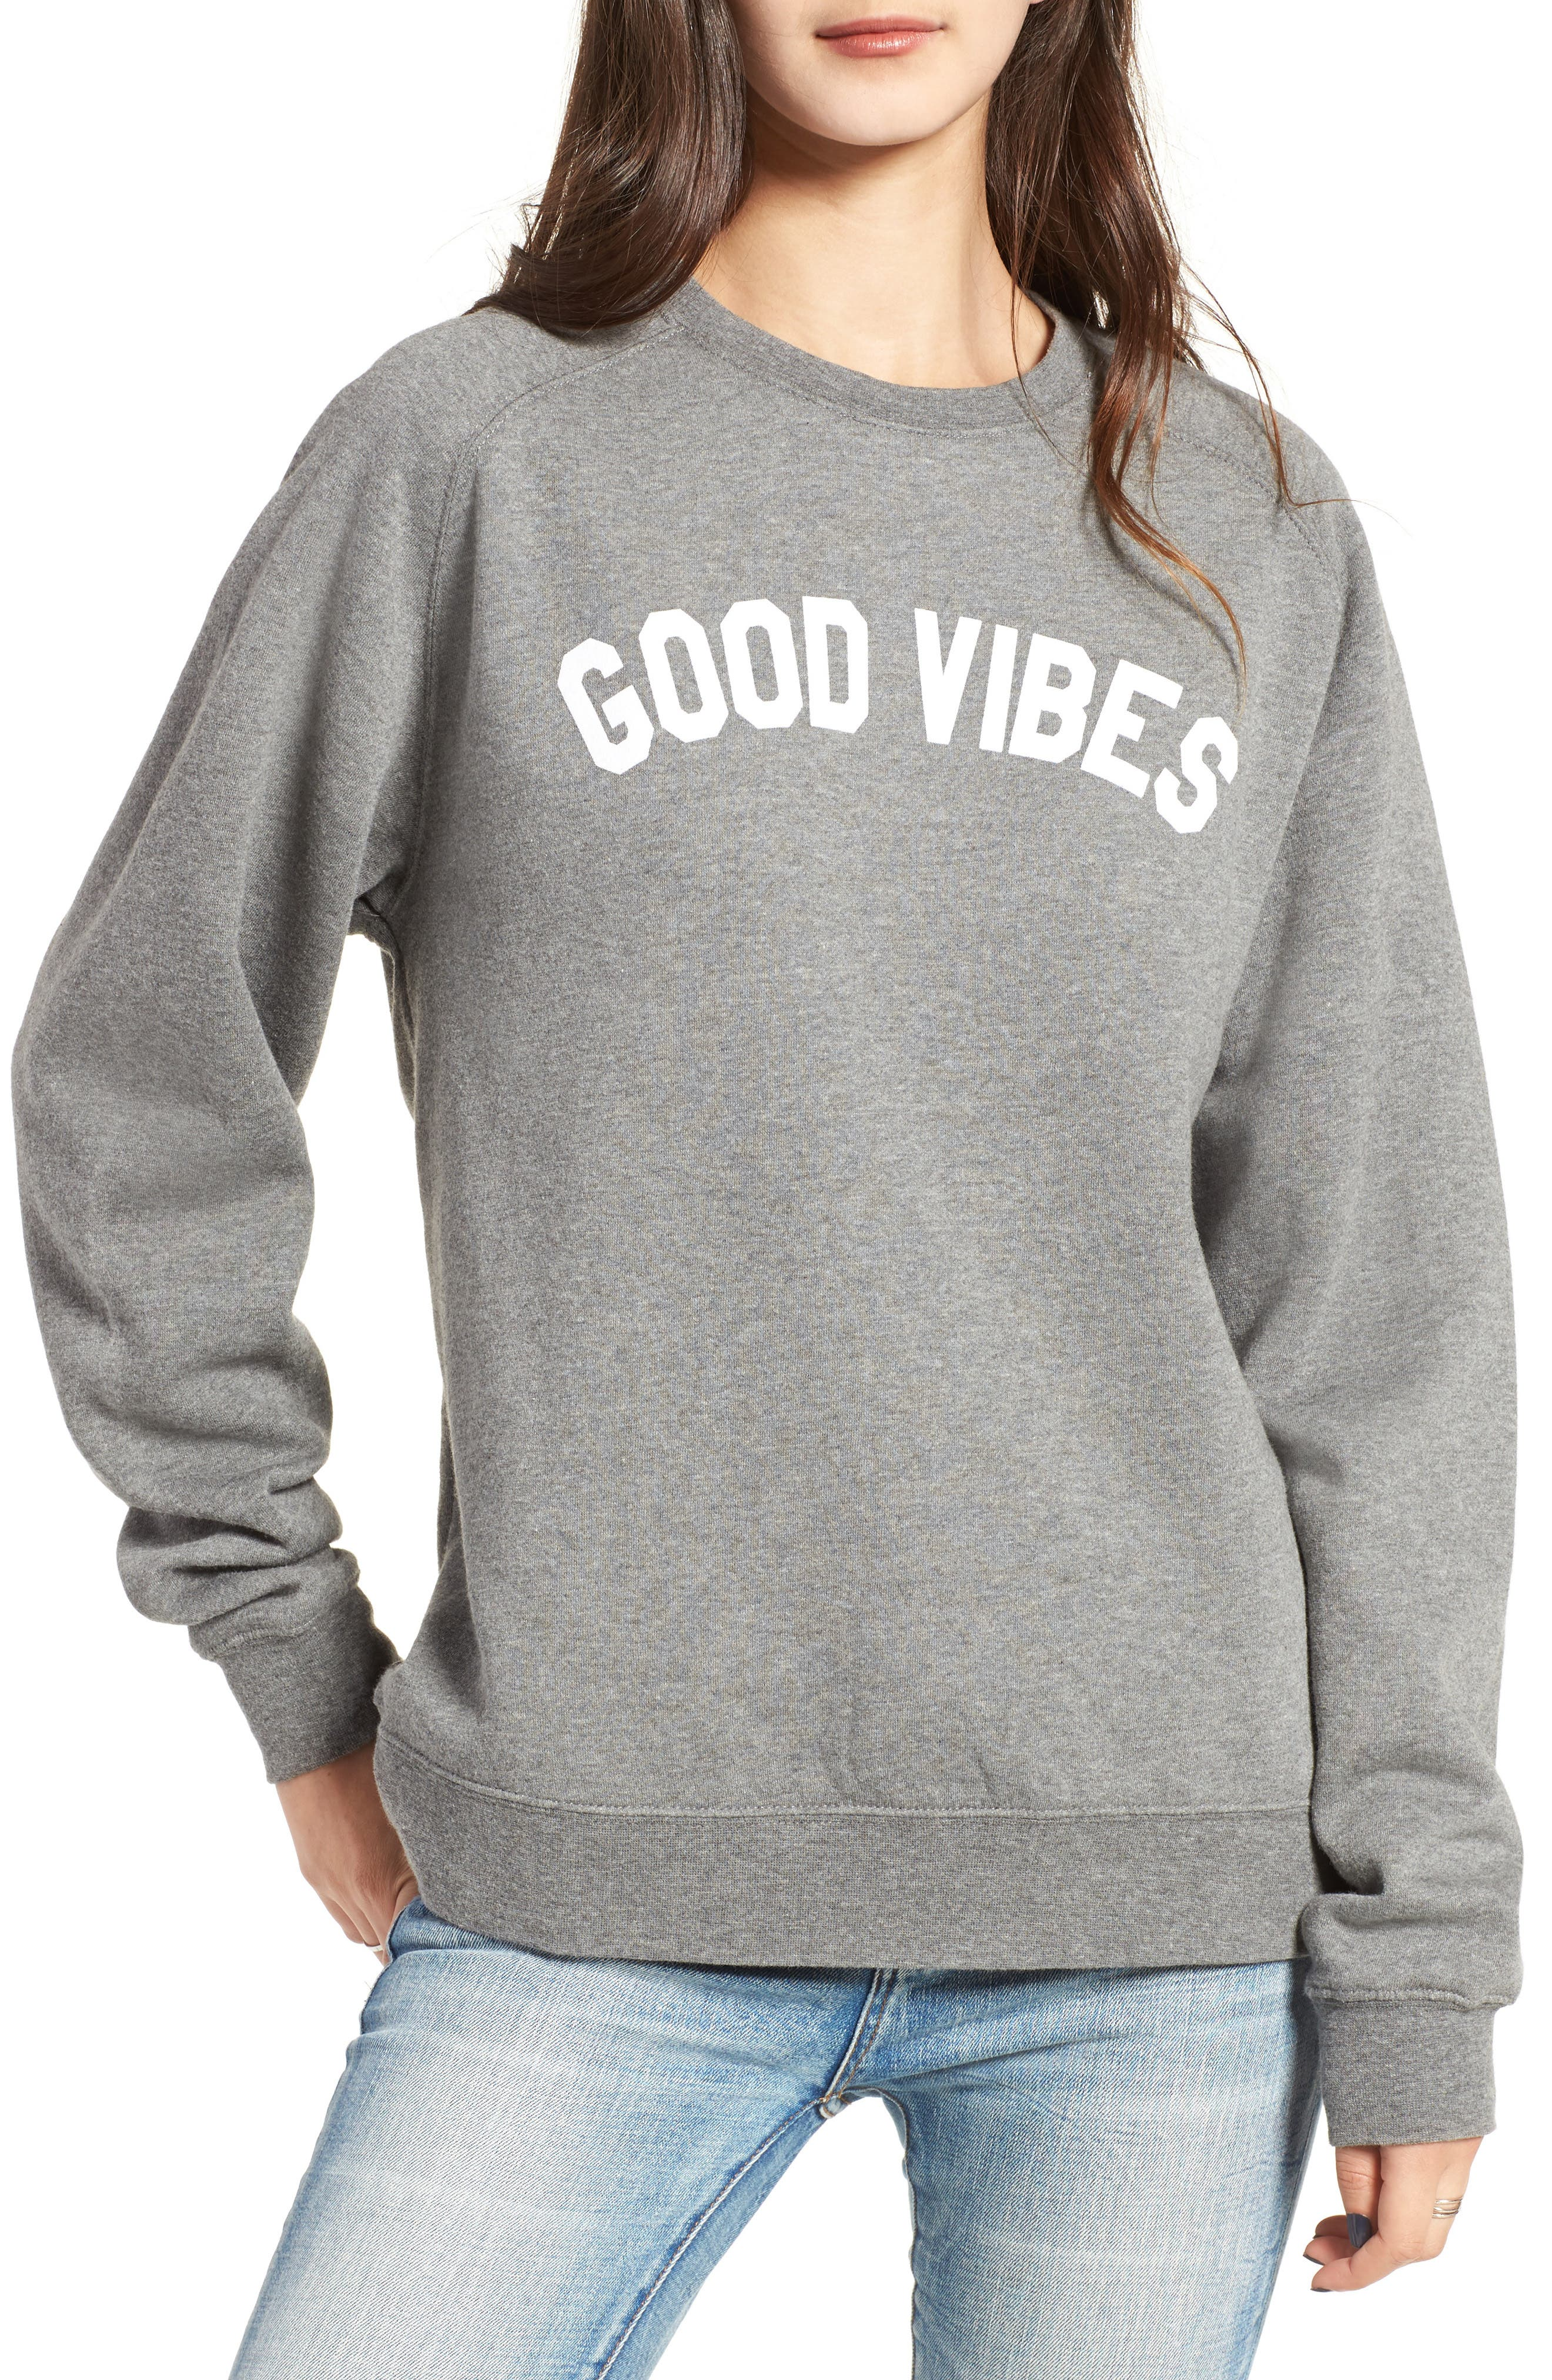 Sub_Urban Riot Good Vibes Willow Sweatshirt